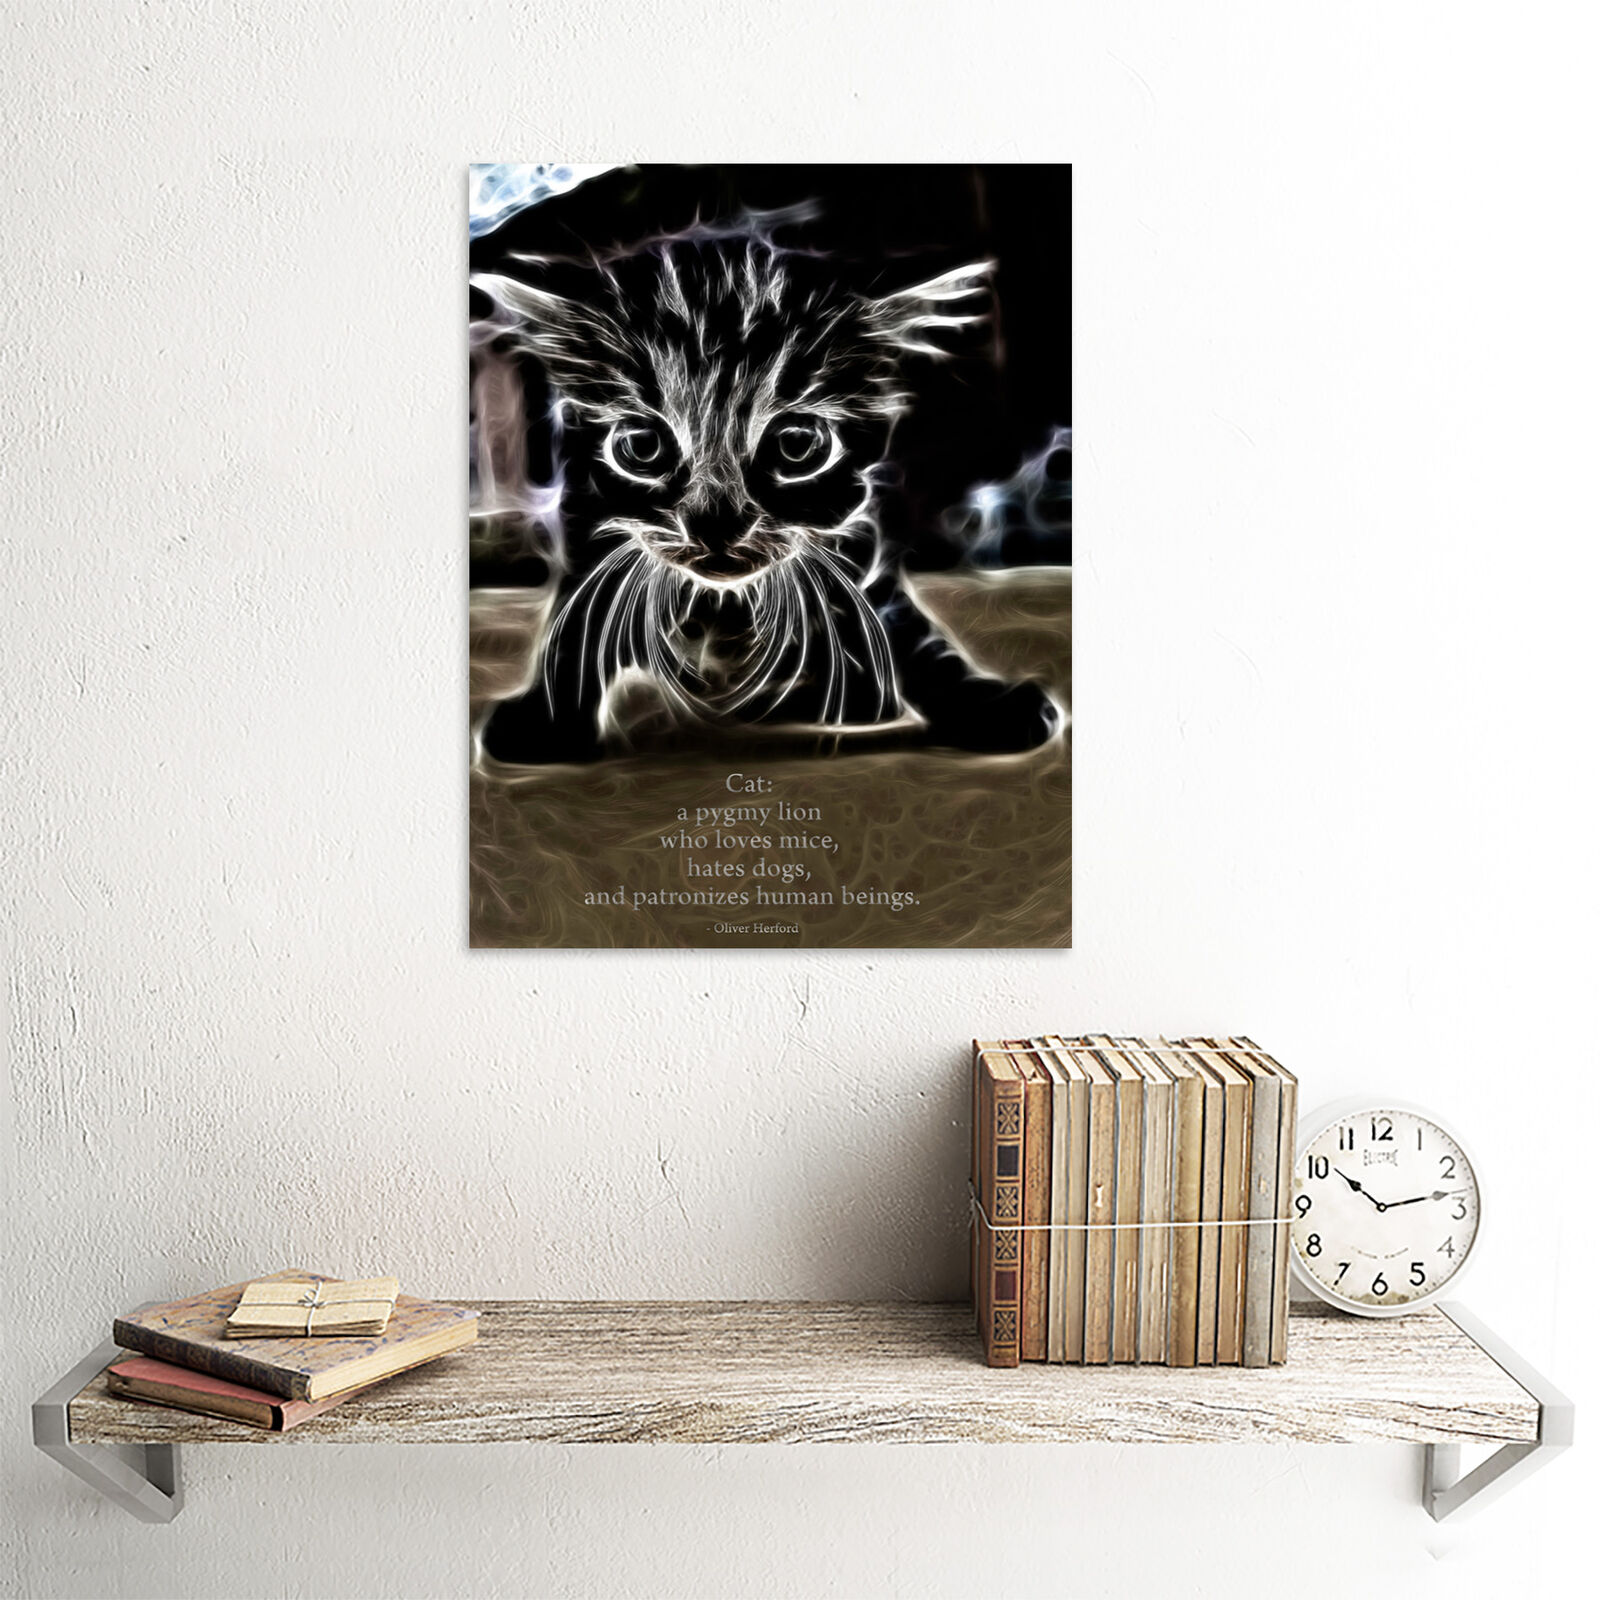 Herford Cat Pygmy Lion Fractal Quote Unframed Wall Art Poster